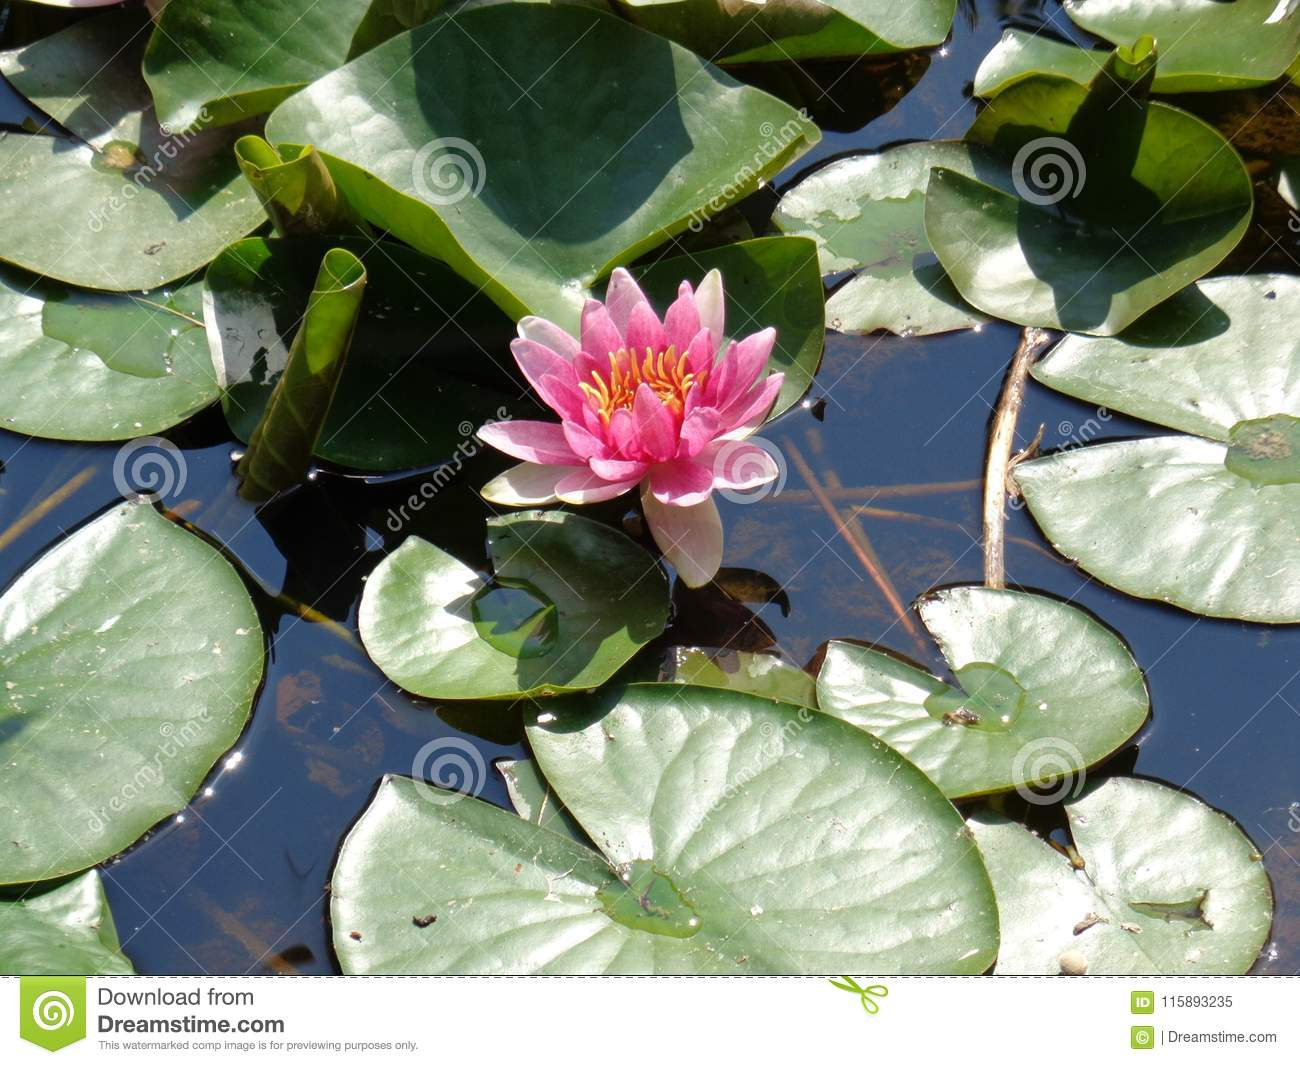 Water lilly the most beautiful aquatic plants stock image image water lilies are a well studied clade of plants because their large flowers with multiple unspecialized parts were initially considered to represent the izmirmasajfo